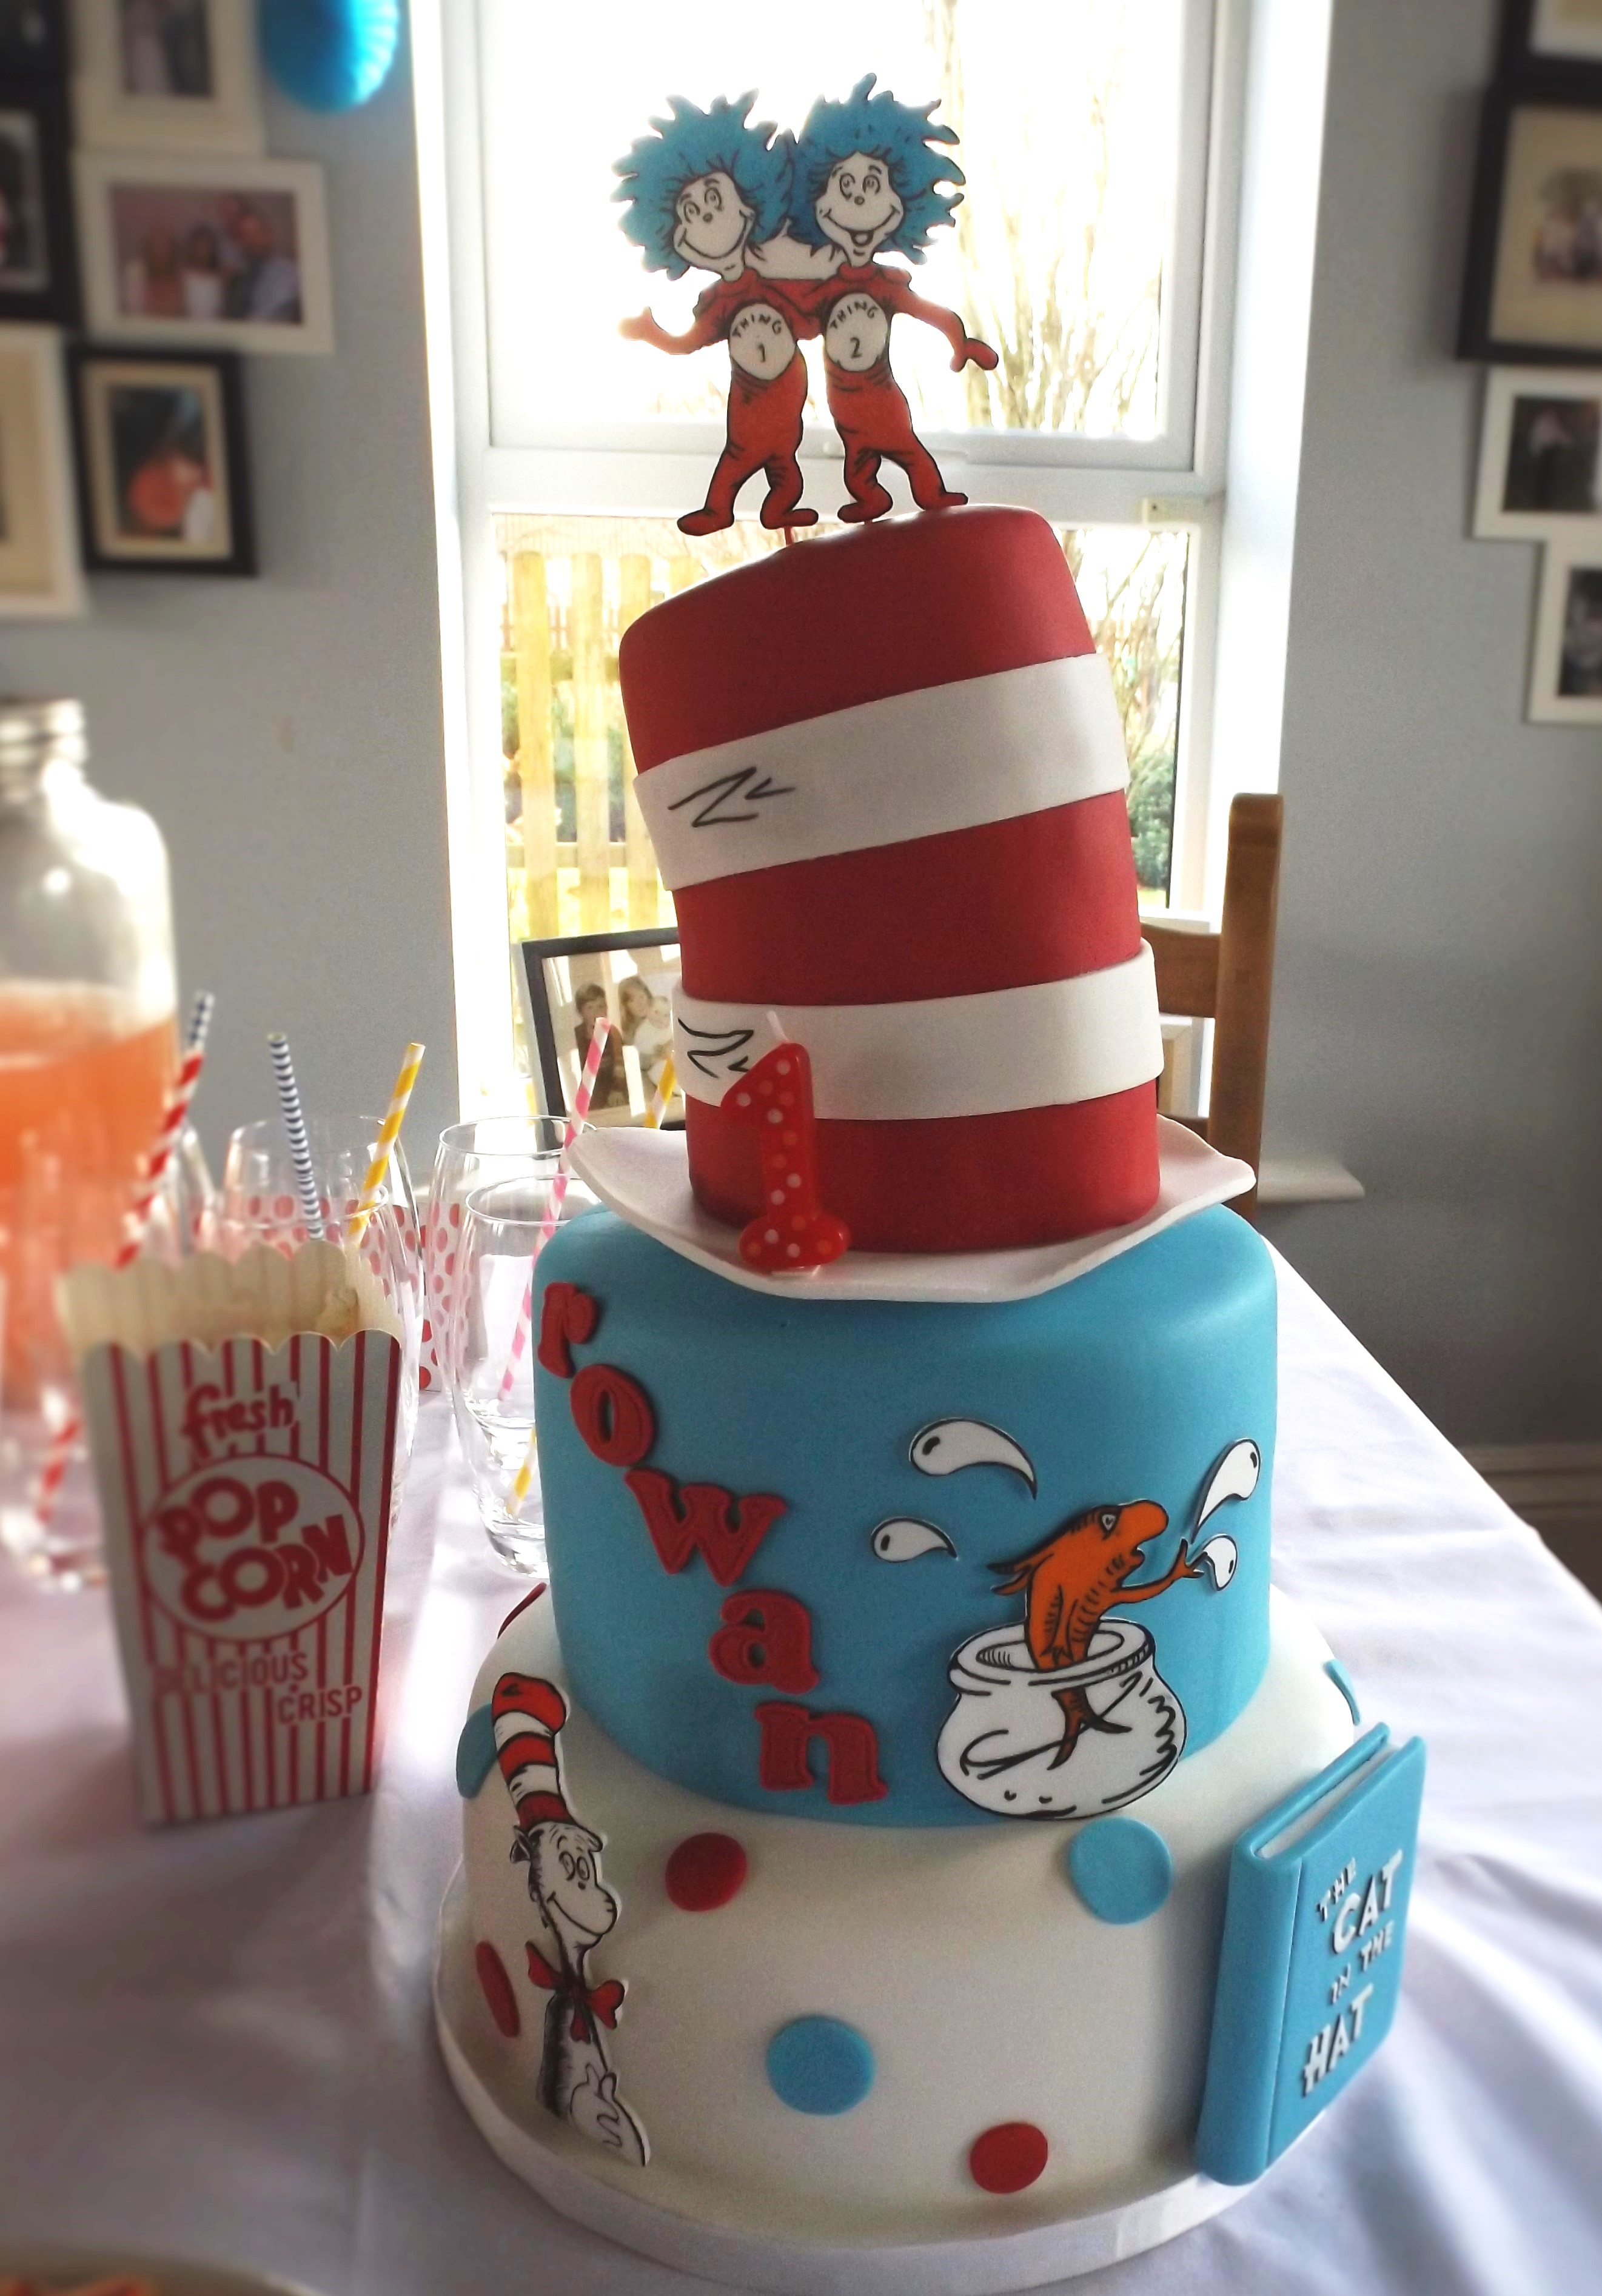 Wondrous Dr Seuss Themed First Birthday Party Rowan Turns One Funny Birthday Cards Online Alyptdamsfinfo